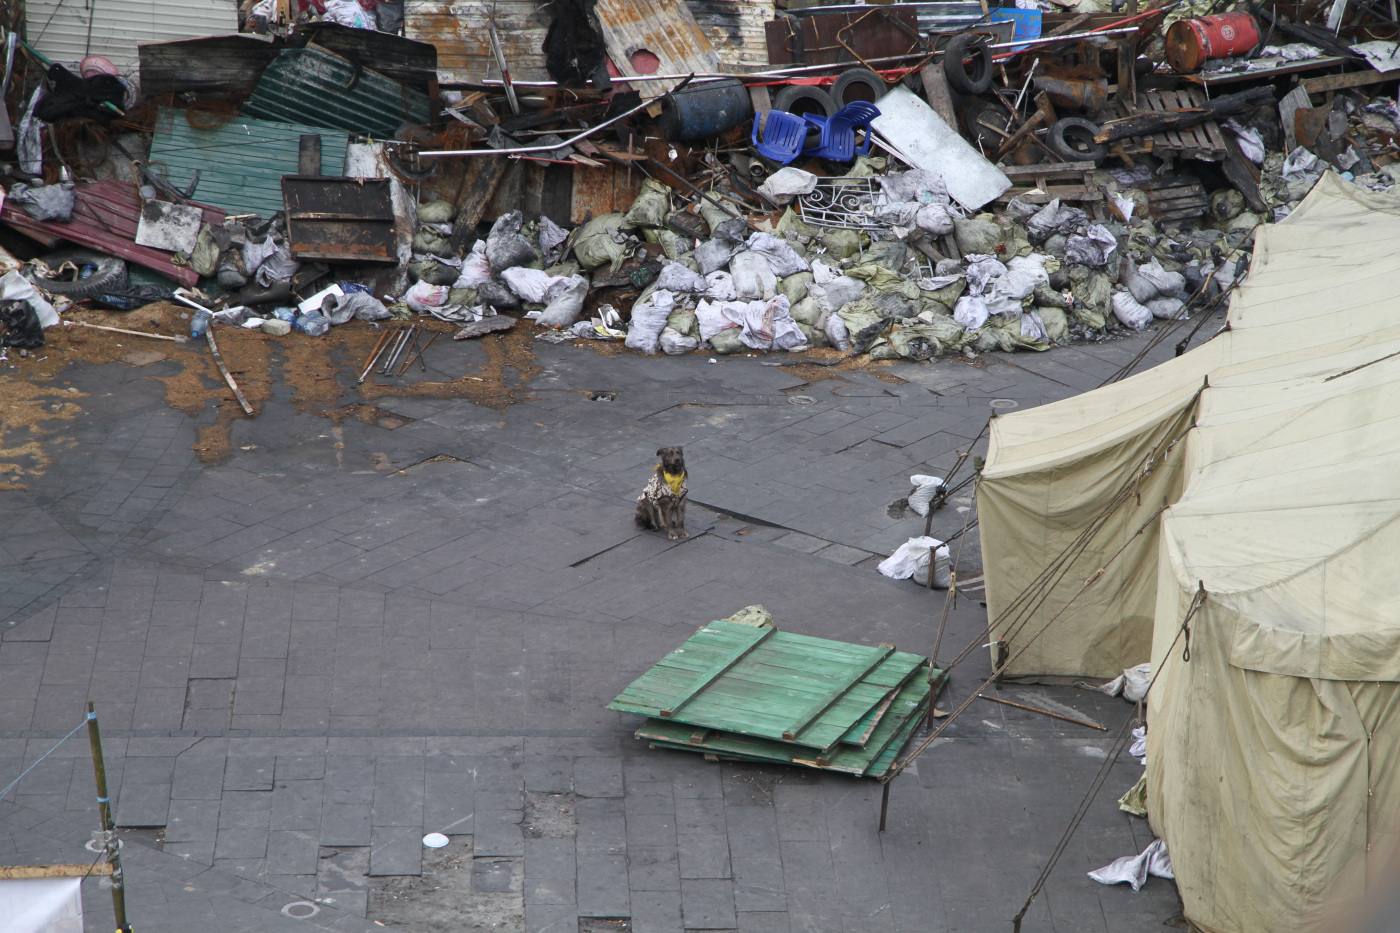 A dog sits amidst trash barriers in Maidan Nezalezhnosti, epicenter of the Euromaidan protests in Kiev, Ukraine. (2014, Medium)